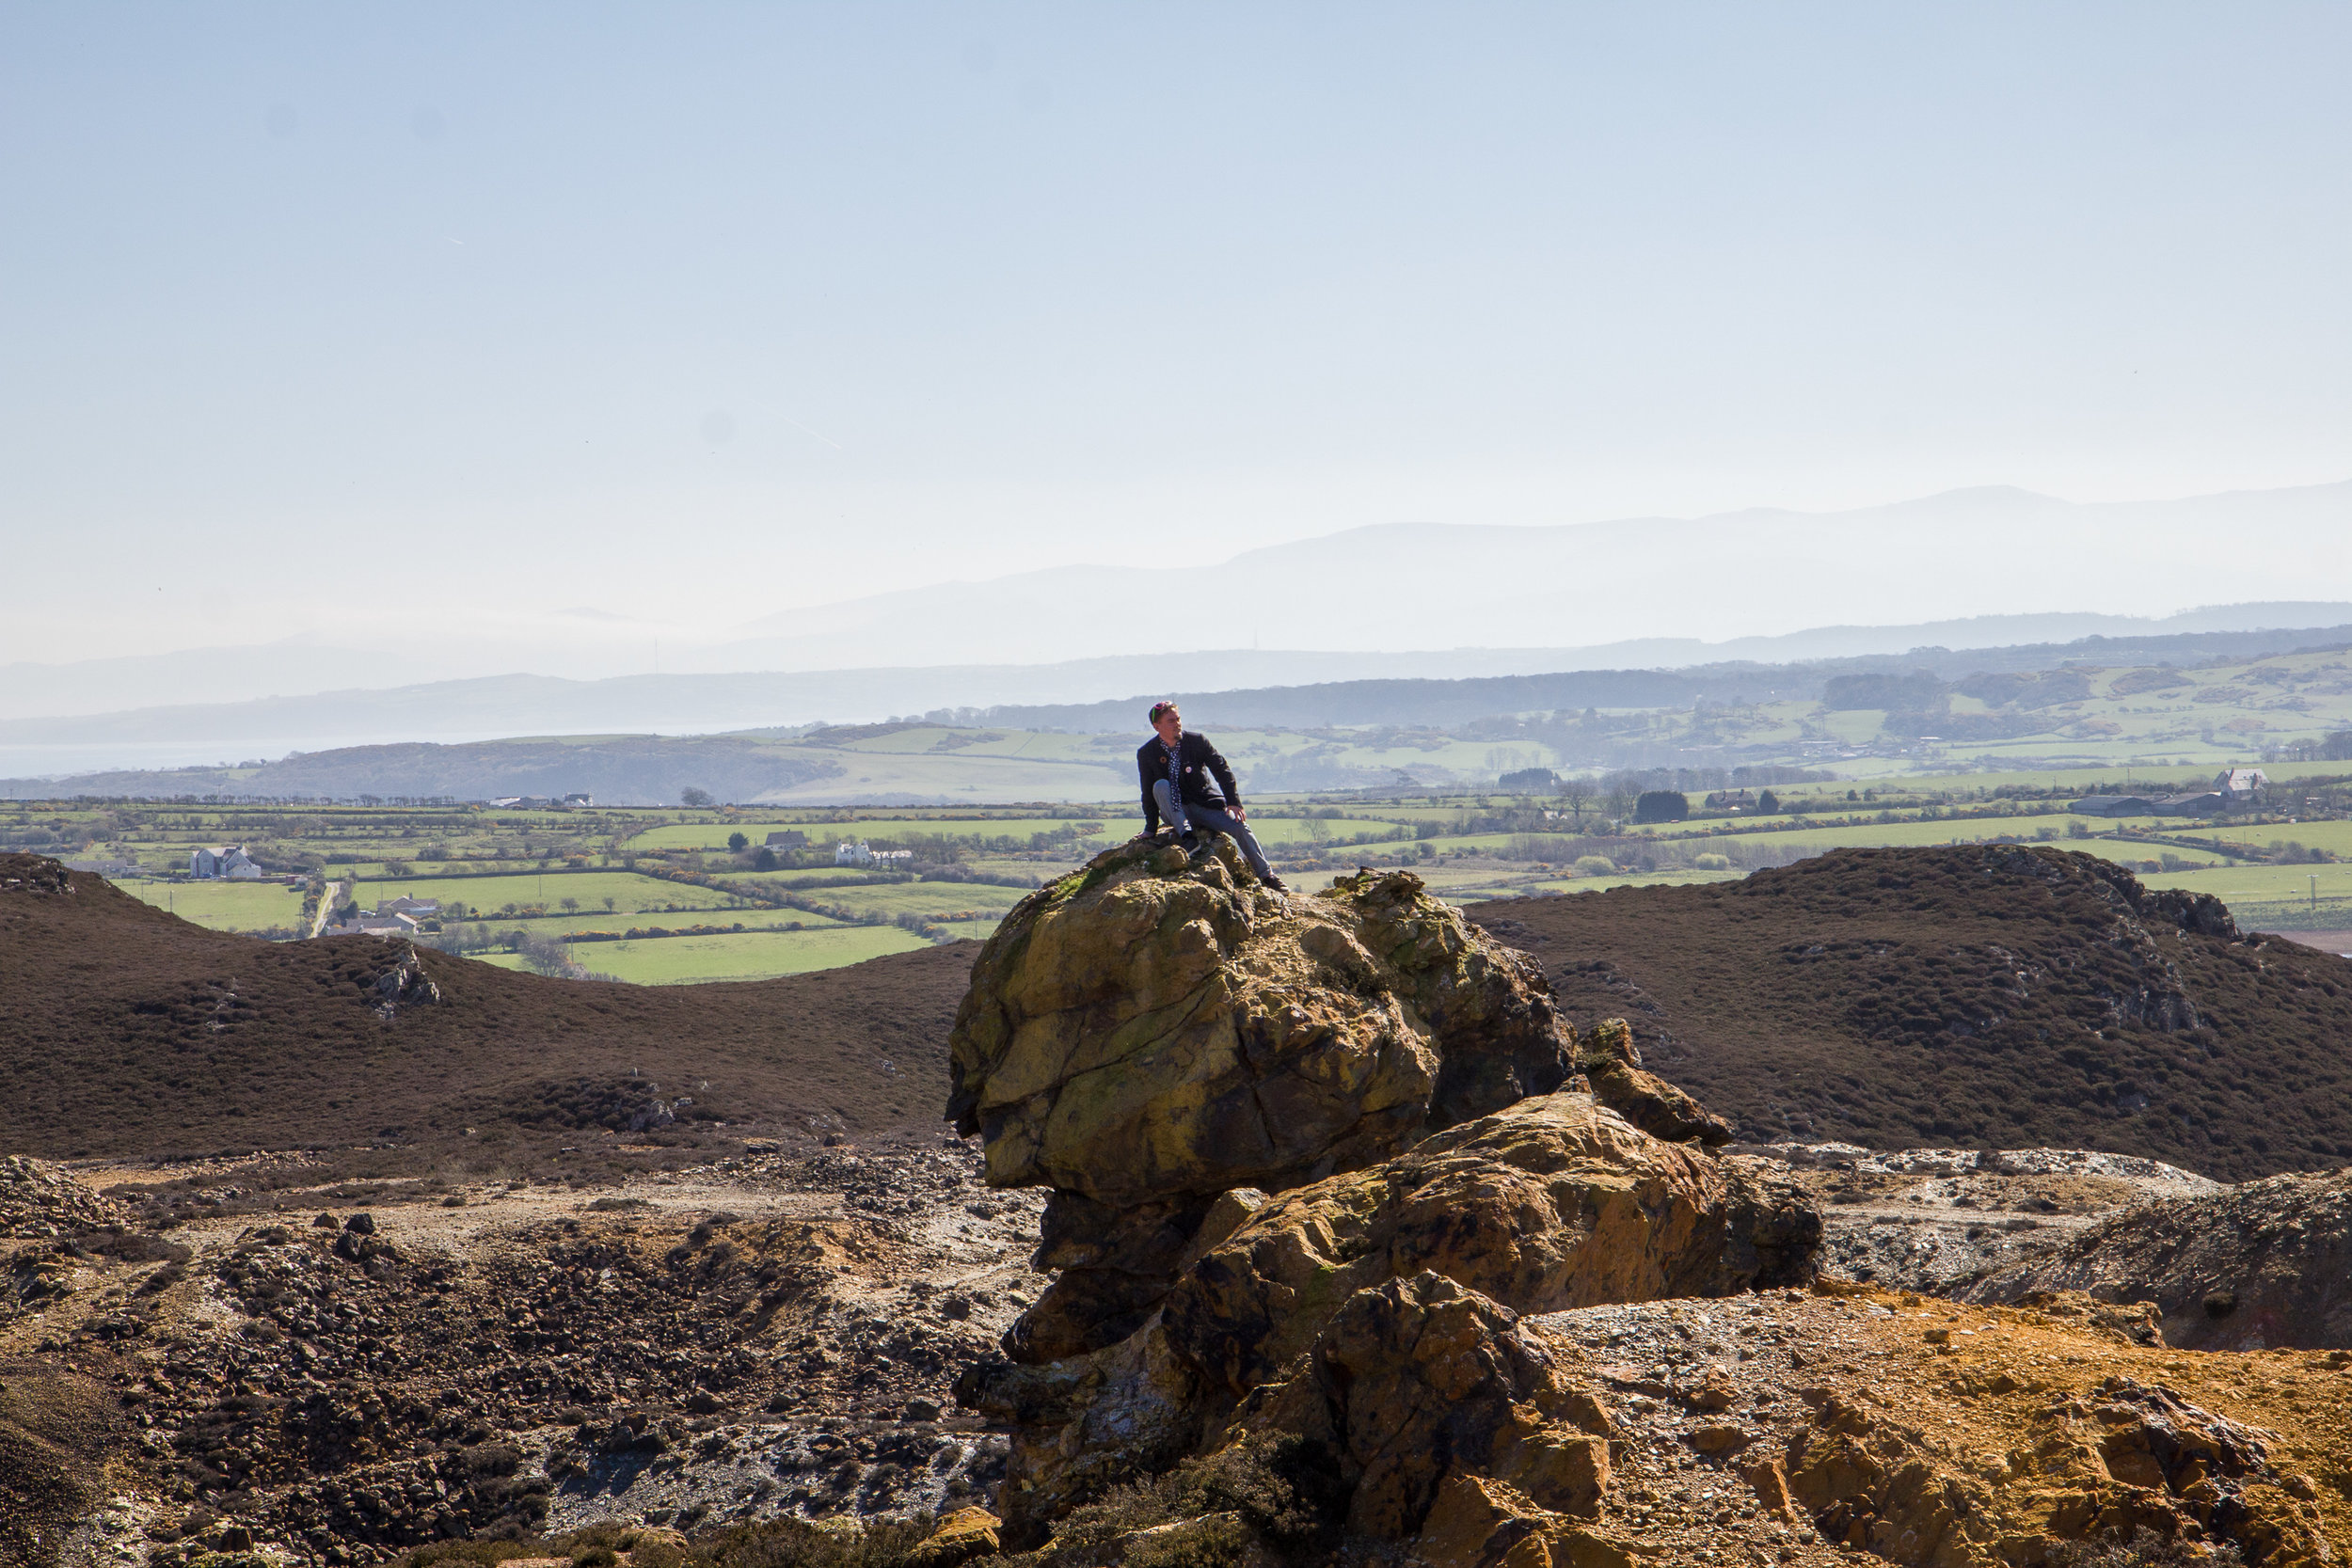 Bard (Rhys Trimble) ar y top. Mountains of Snowdonia behind, across Anglesey plain and the Menai Straights